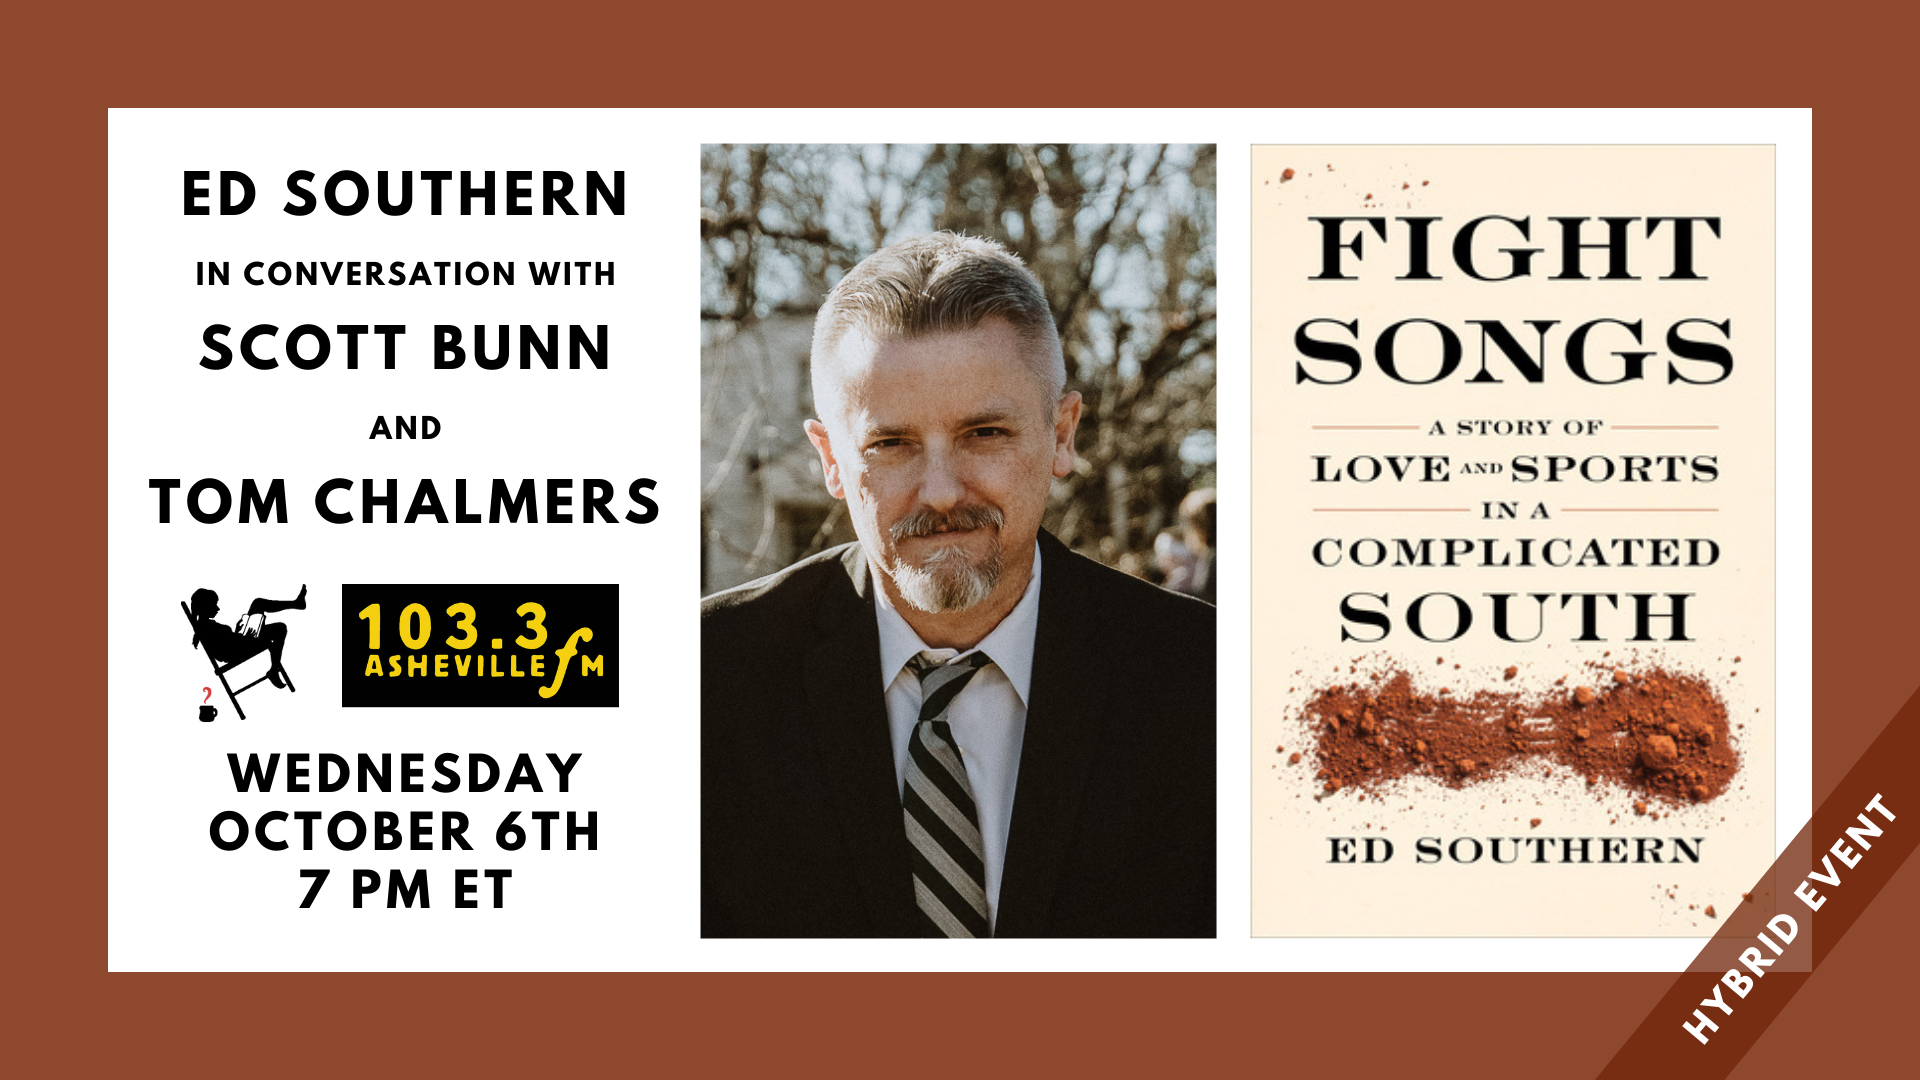 Image text: Ed Southern in conversation with Scott Bunn and Tom Chalmers. Wednesday, October 6 at 7 PM ET. Also shown: Asheville FM 103.3 logo, photo of author Ed Southern, and front cover of his book Fight Songs